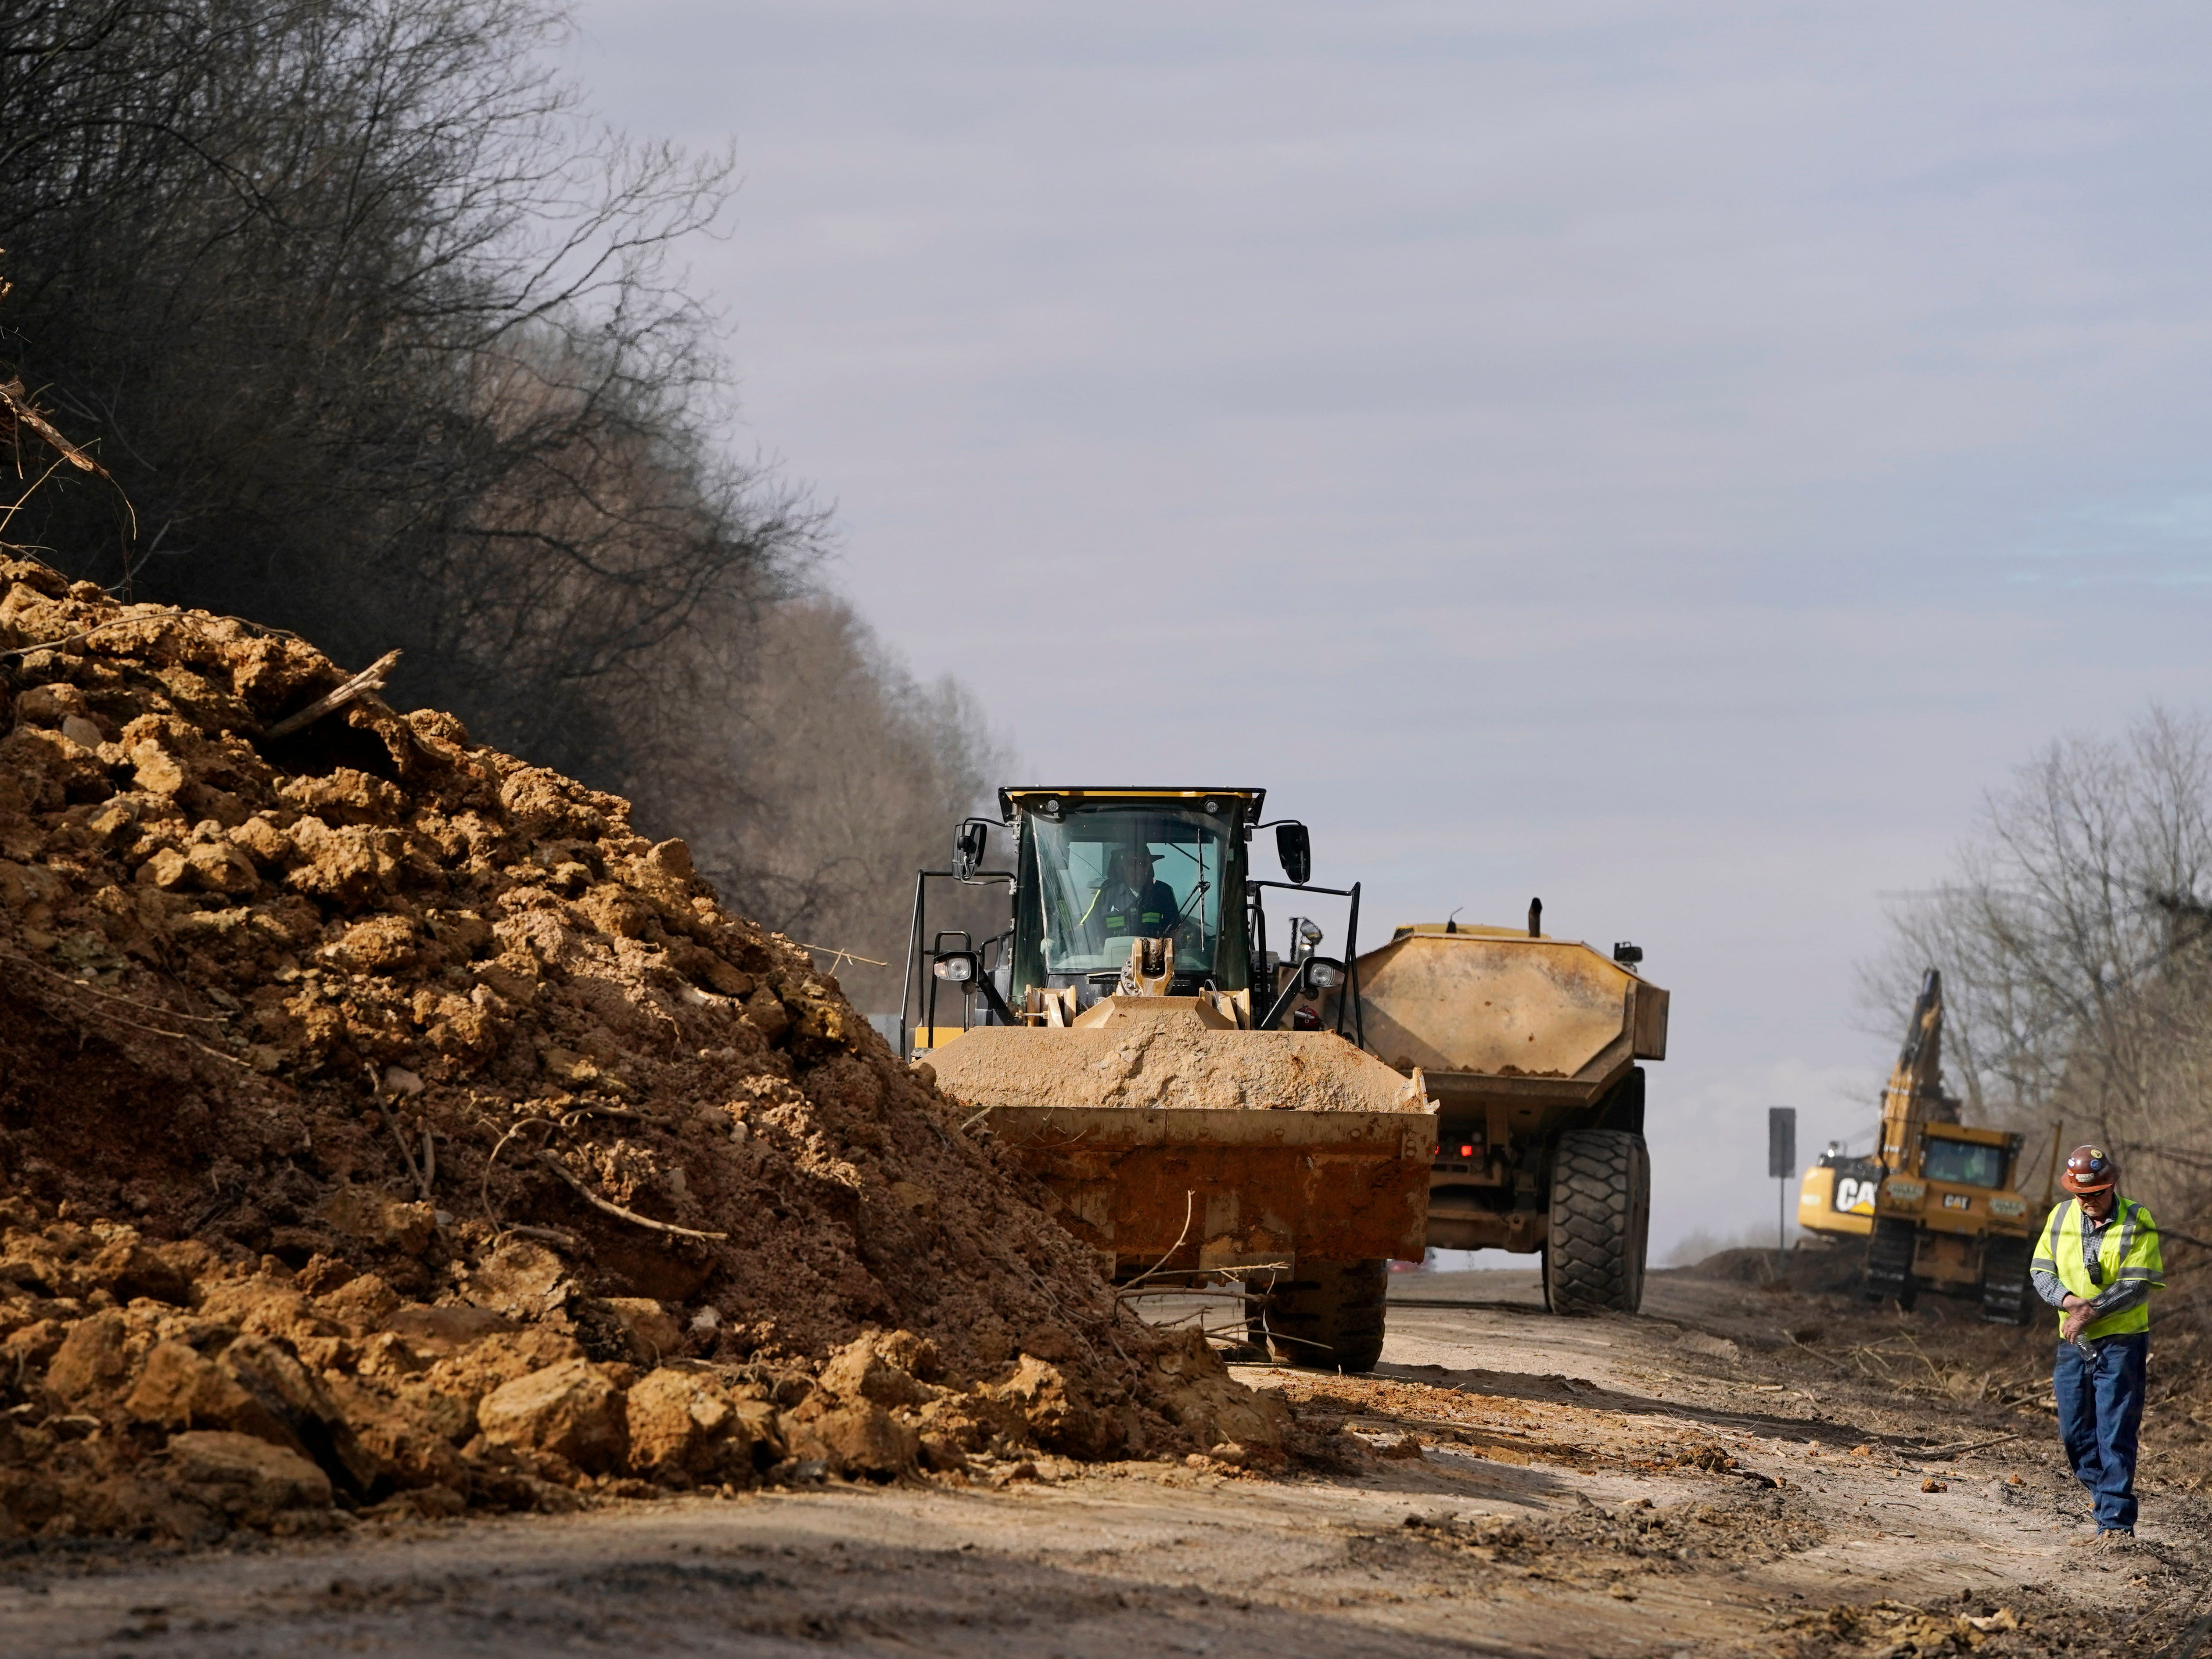 Tennessee Department of Transportation workers clean up debris Feb. 27, 2019, from a landslide along Interstate 24 eastbound near mile marker 42 in the Whites Creek area.